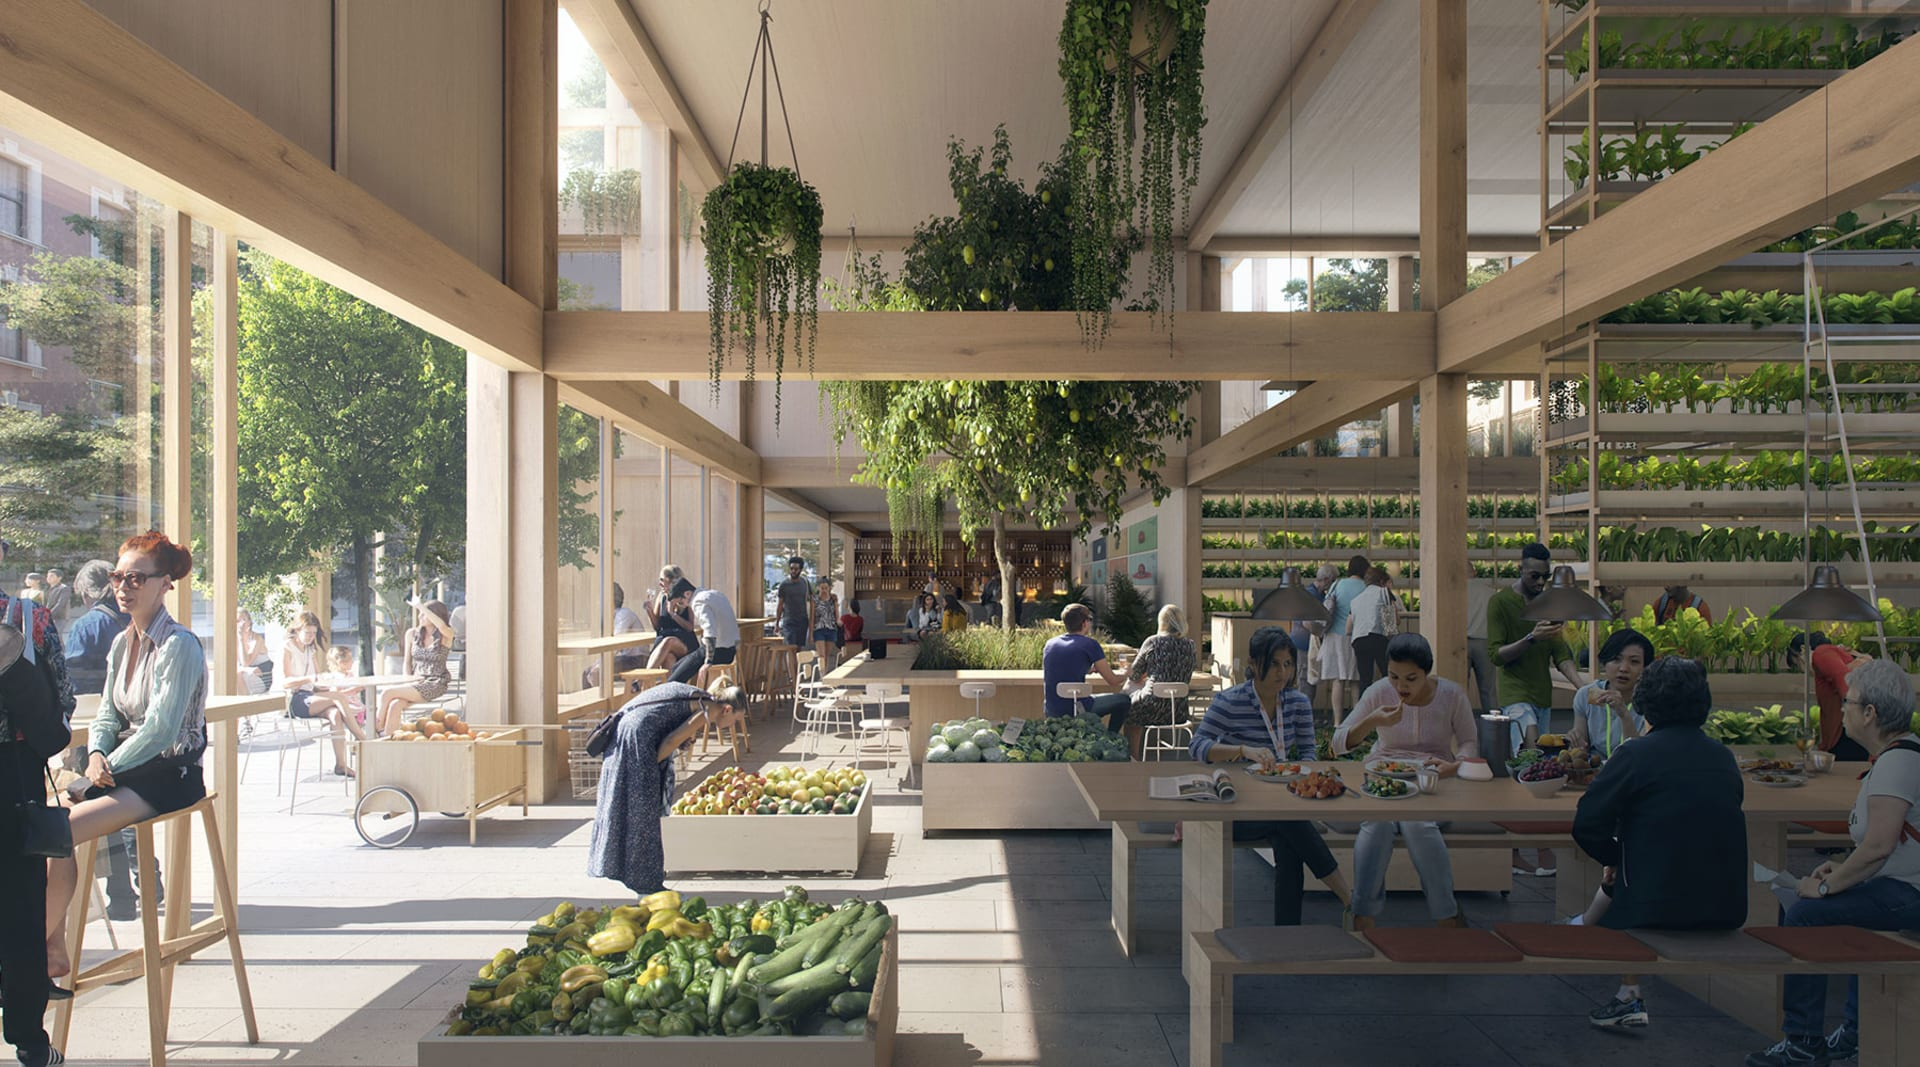 HERO Grow Share Eat Made by EFFEKT Architects for SPACE10